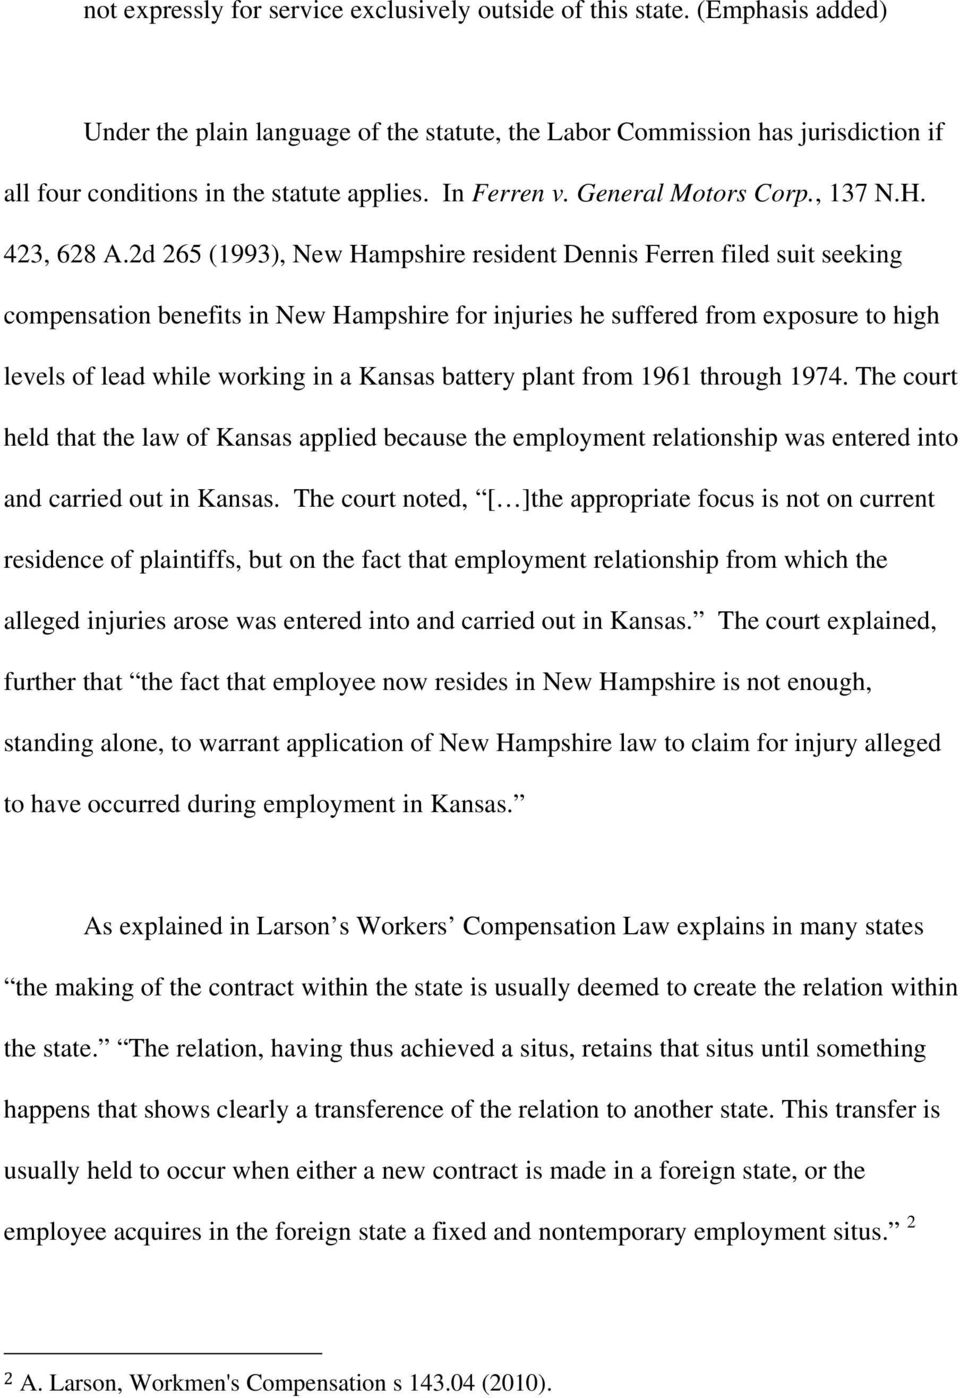 2d 265 (1993), New Hampshire resident Dennis Ferren filed suit seeking compensation benefits in New Hampshire for injuries he suffered from exposure to high levels of lead while working in a Kansas